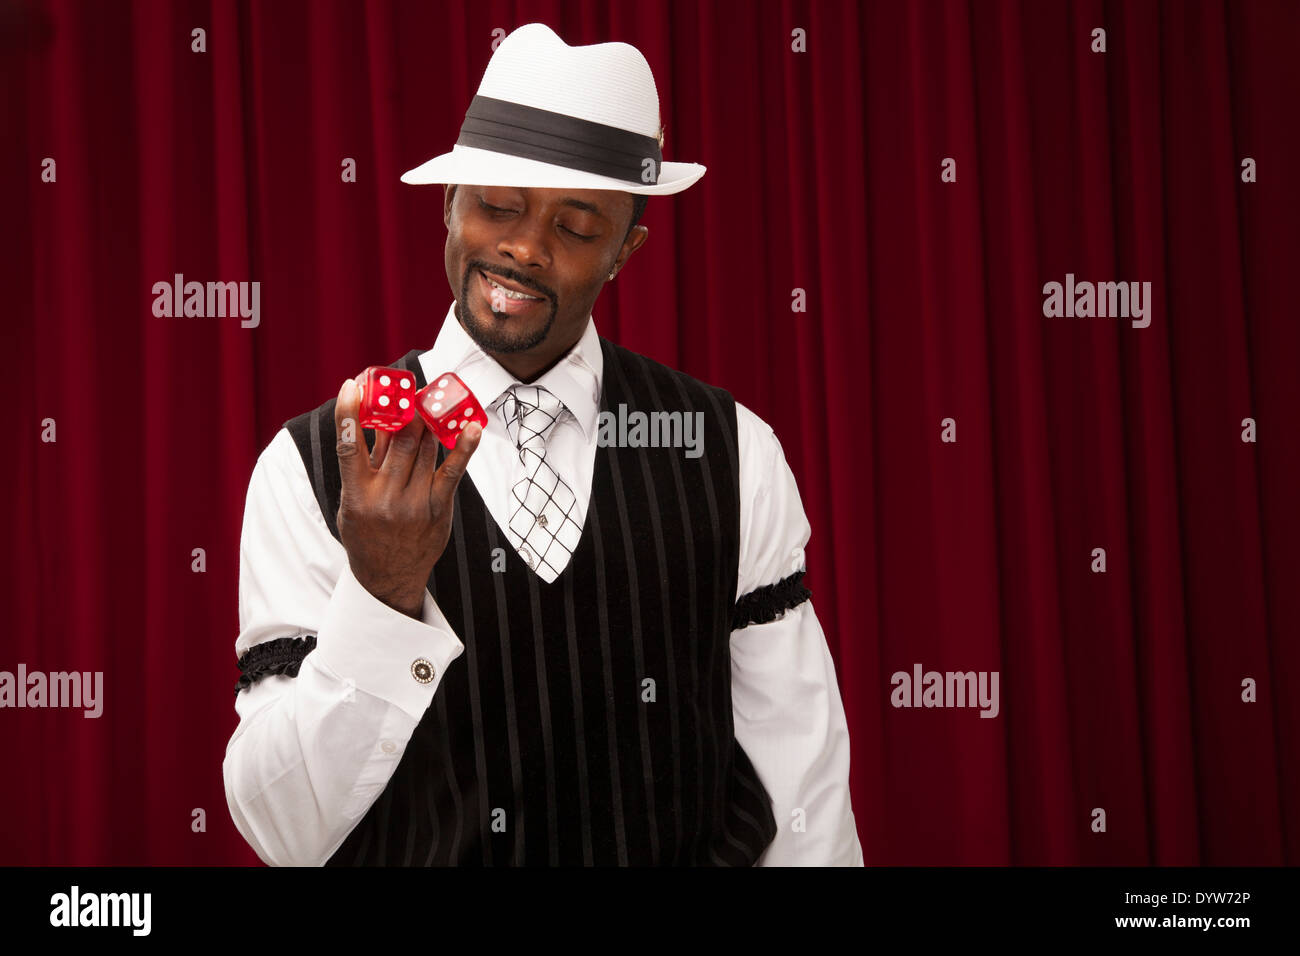 well dressed gambler in a retro suit holding over sized dice - Stock Image